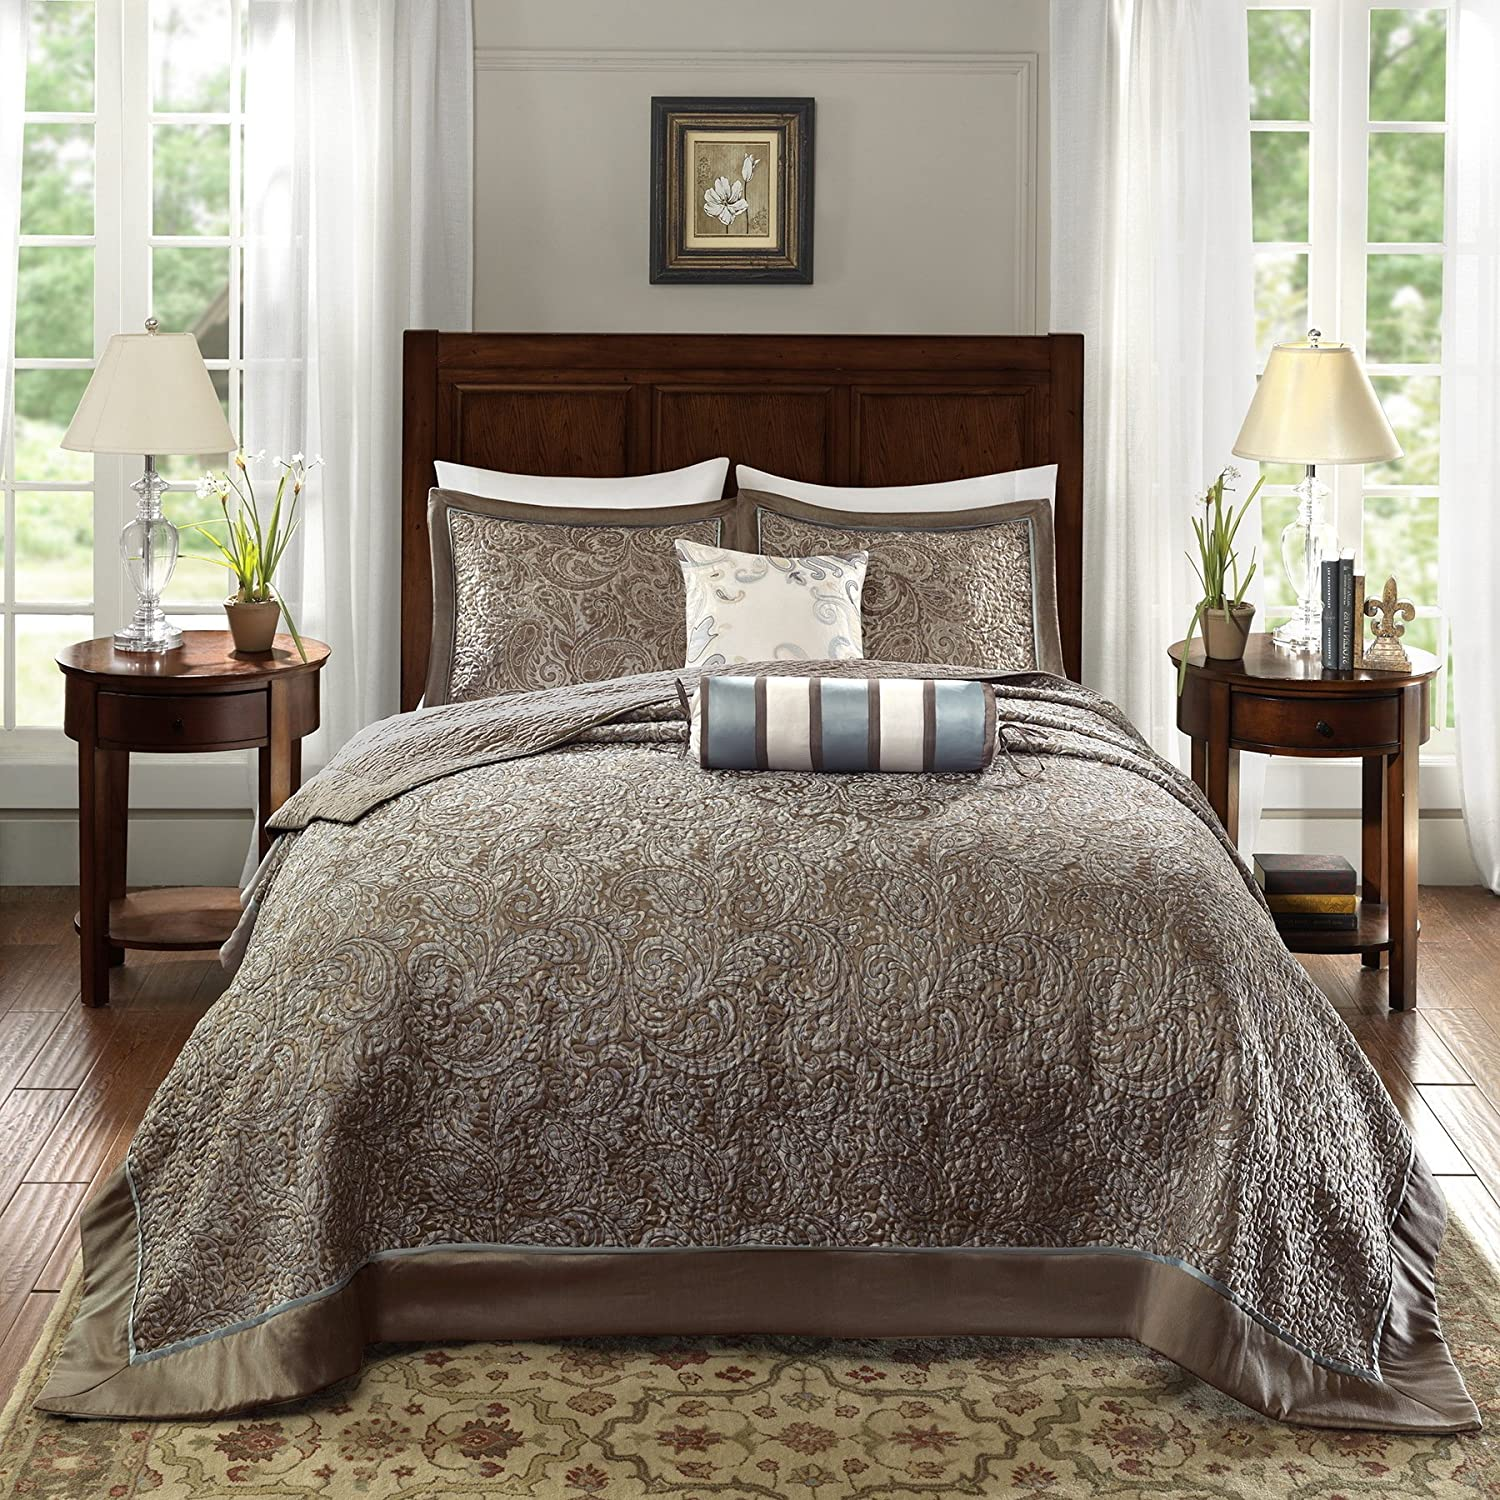 D&H 5 Piece 120 x 118 Oversized Blue Brown King Bedspread to The Floor Set, Extra Long Jacquard Paisley Bedding Xtra Wide Drops Over Edge Frame, Drapes Down Sides Hangs Over Bed, Polyester DH